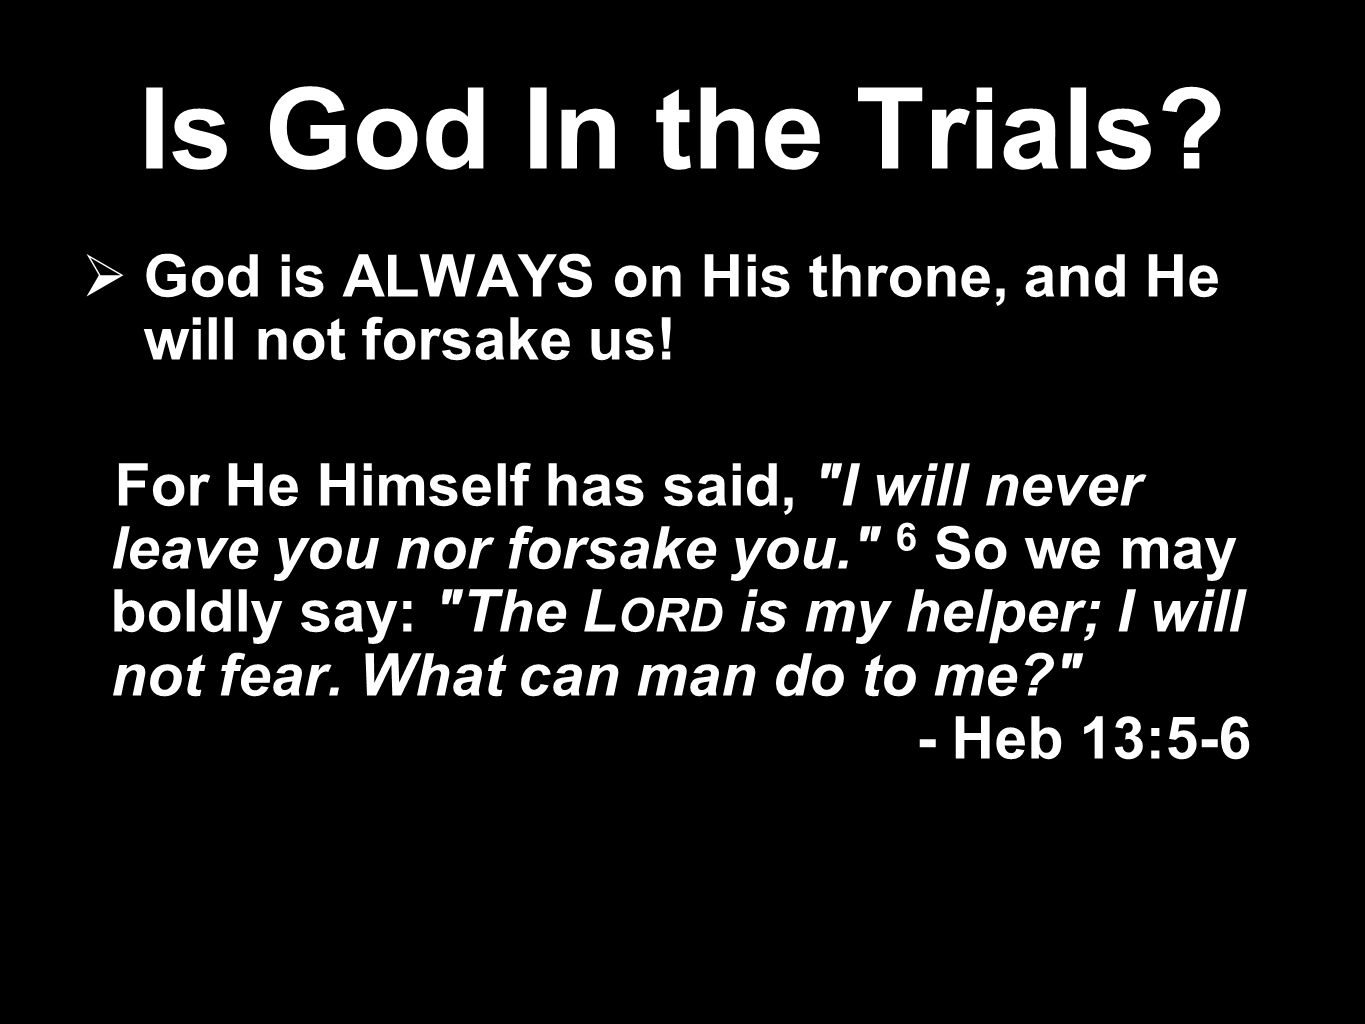 Is God In the Trials God is ALWAYS on His throne, and He will not forsake us!